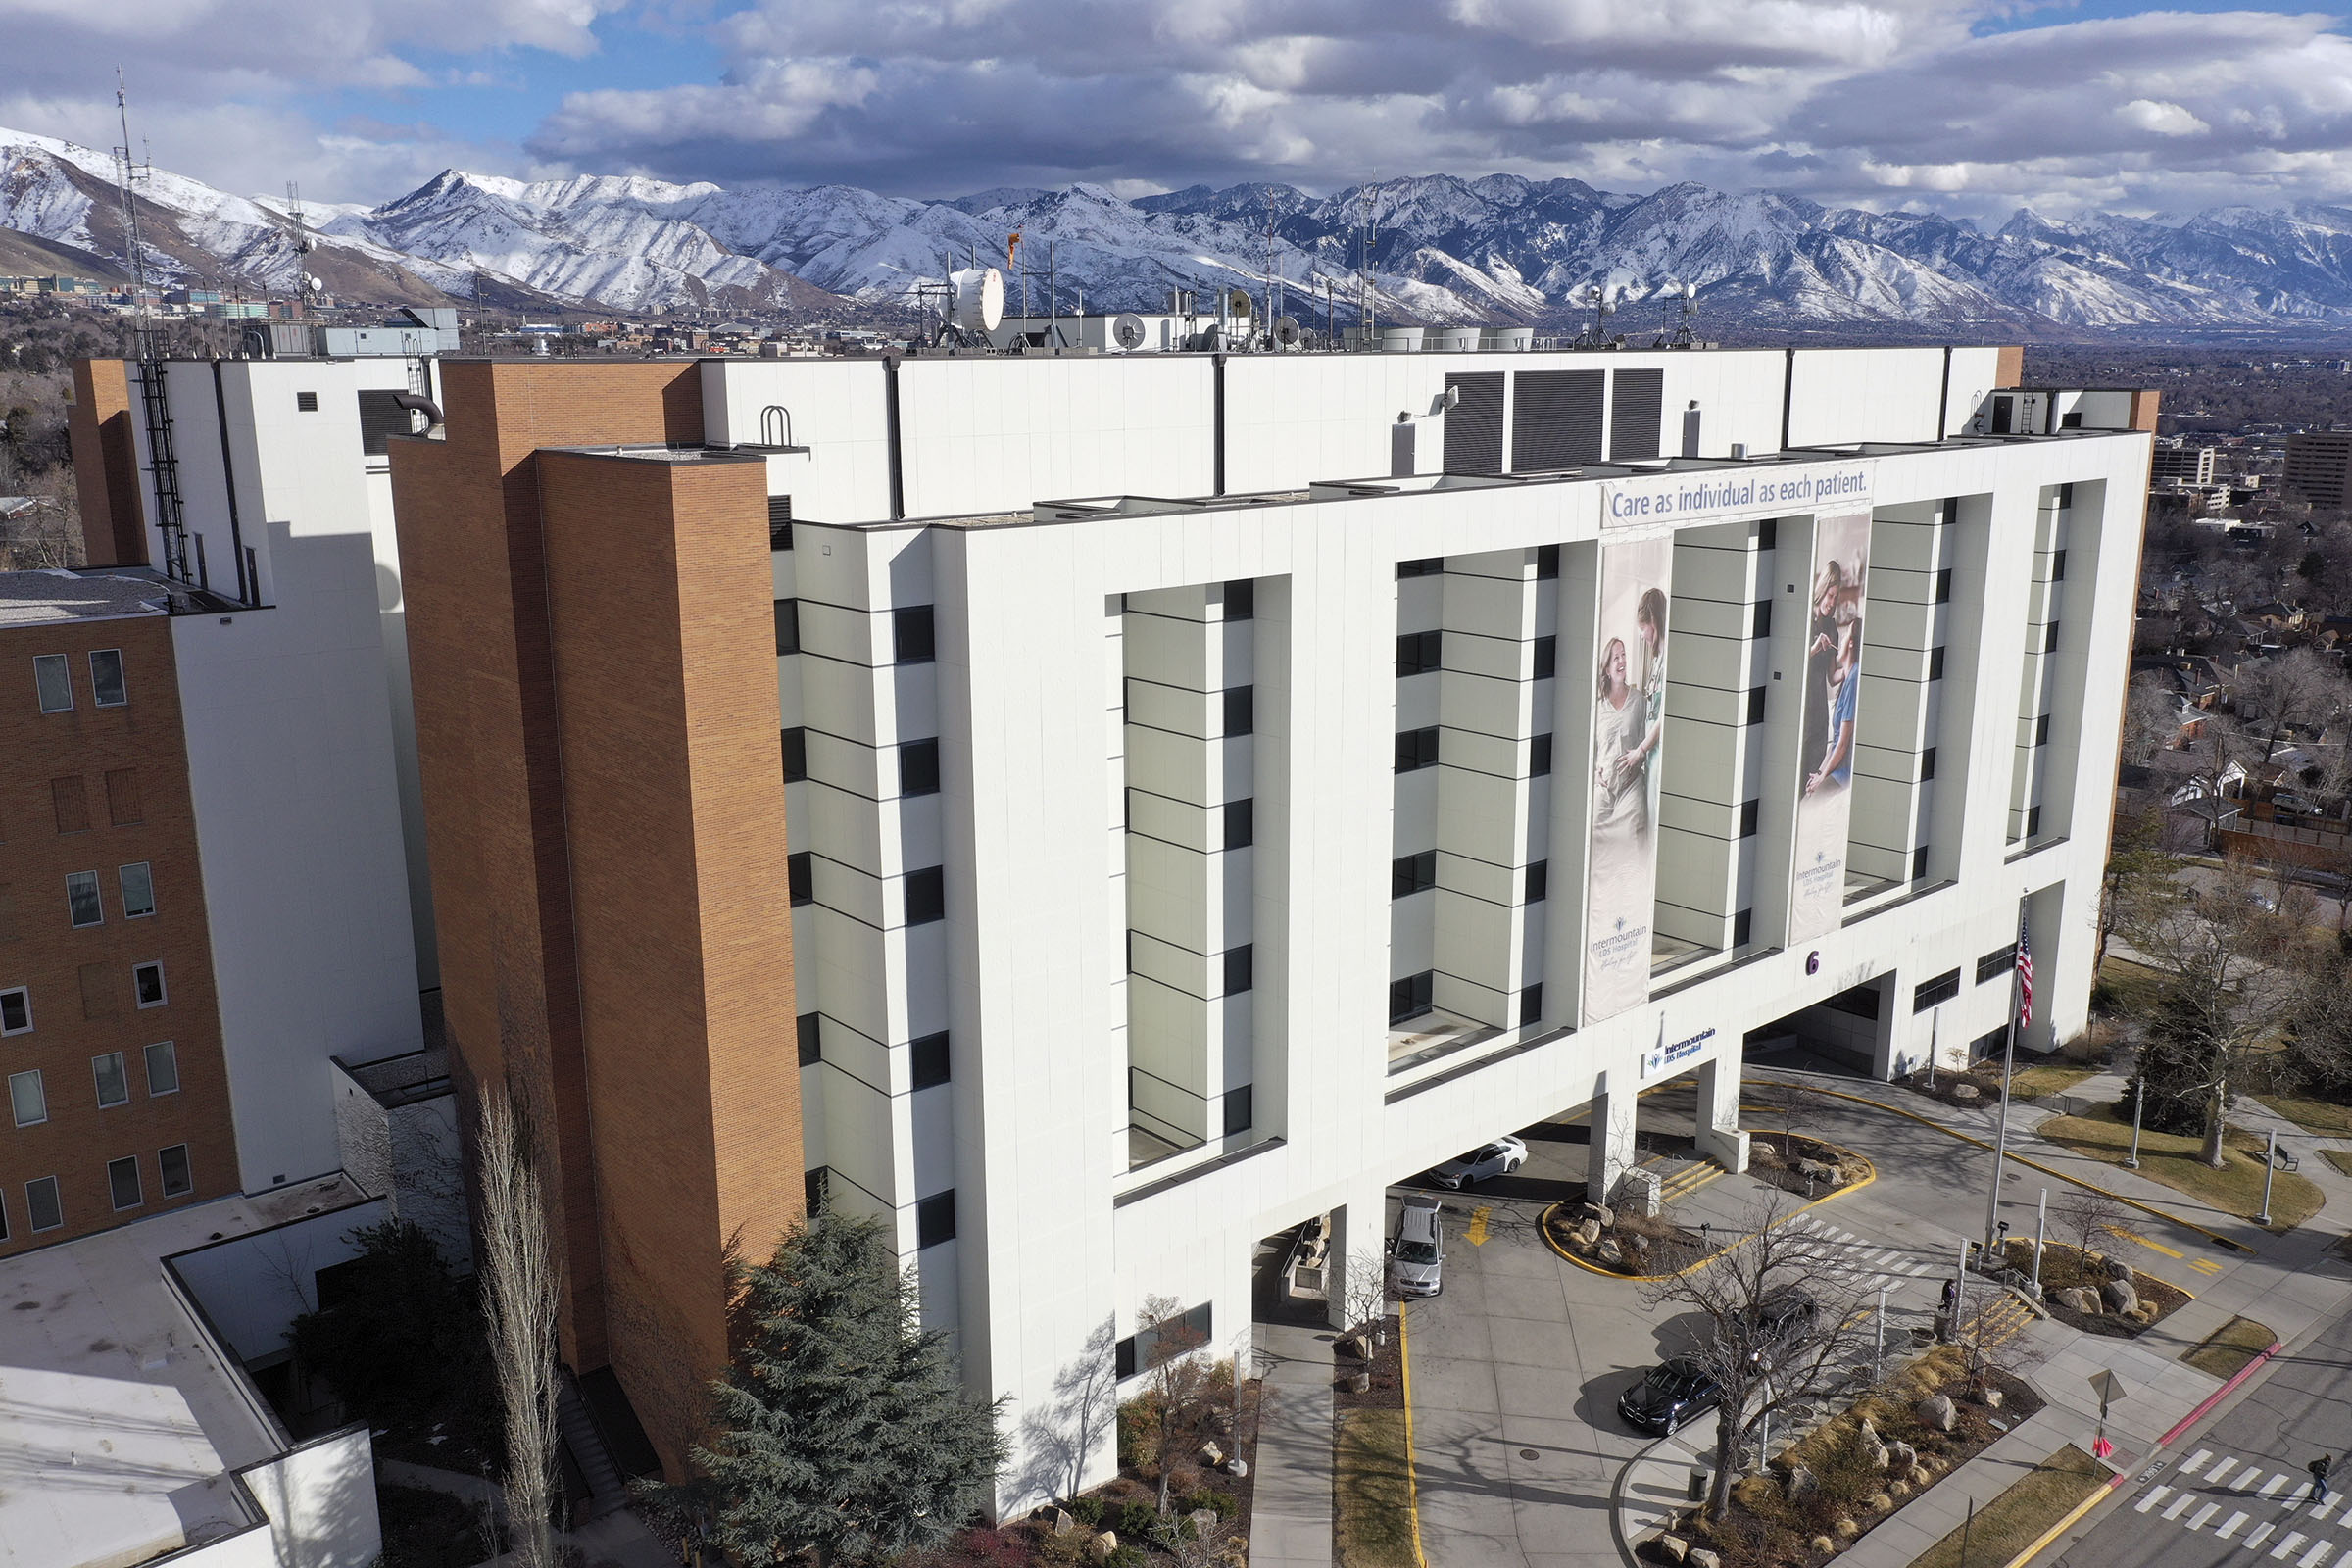 LDS Hospital in Salt Lake City is pictured on Monday, Feb. 24, 2020.